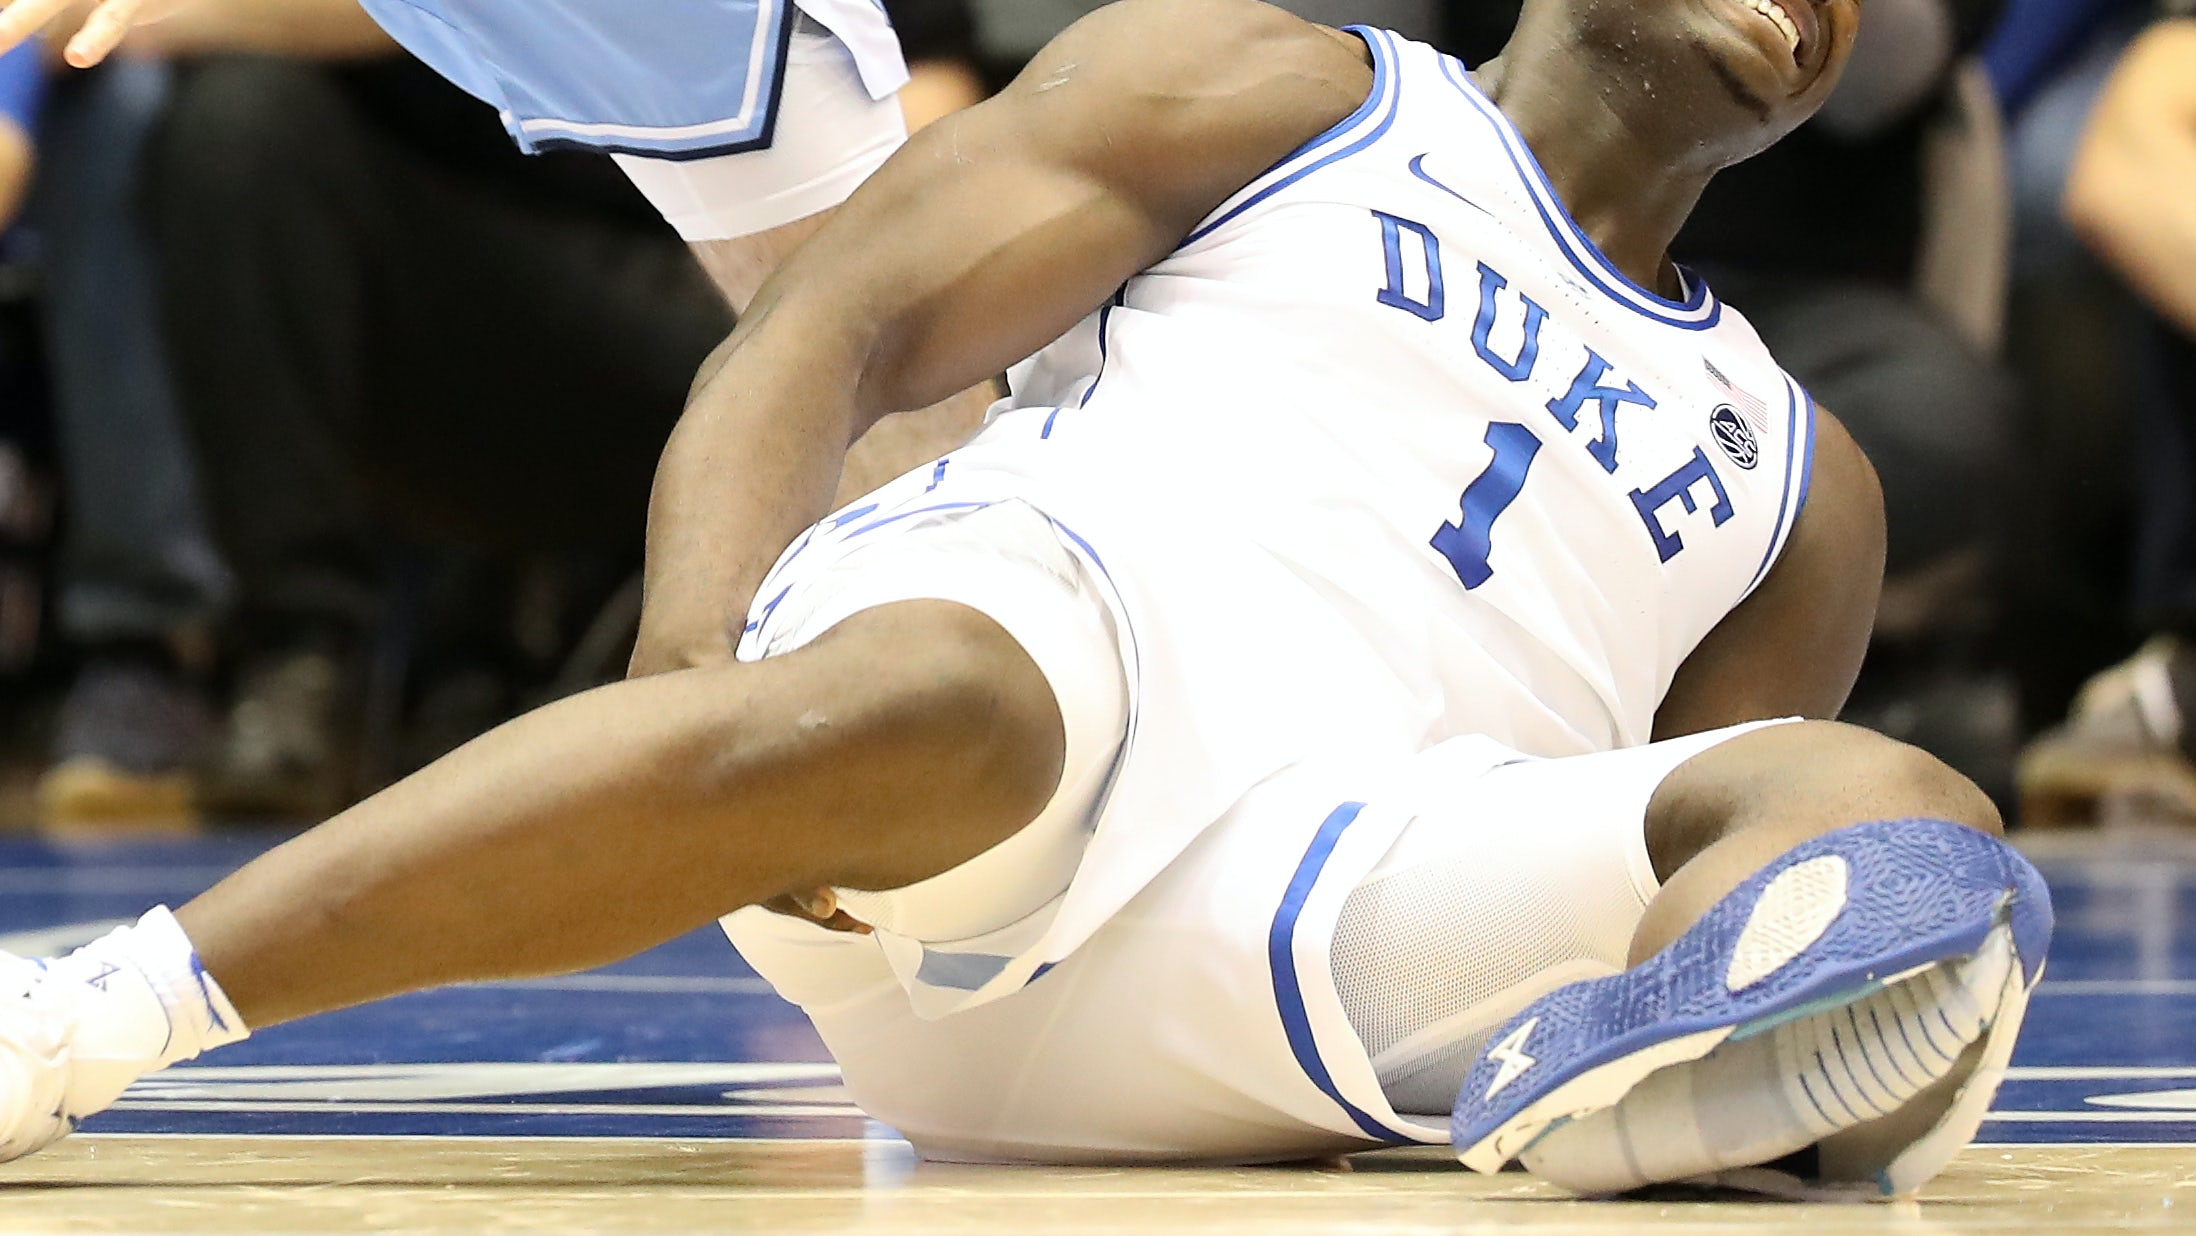 Zion Williamson of the Duke Blue Devils reacts after falling as his shoe breaks against Luke Maye of the North Carolina Tar Heels during their game on February 20, 2019 in Durham, North Carolina. | Photo by Streeter Lecka/Getty Images